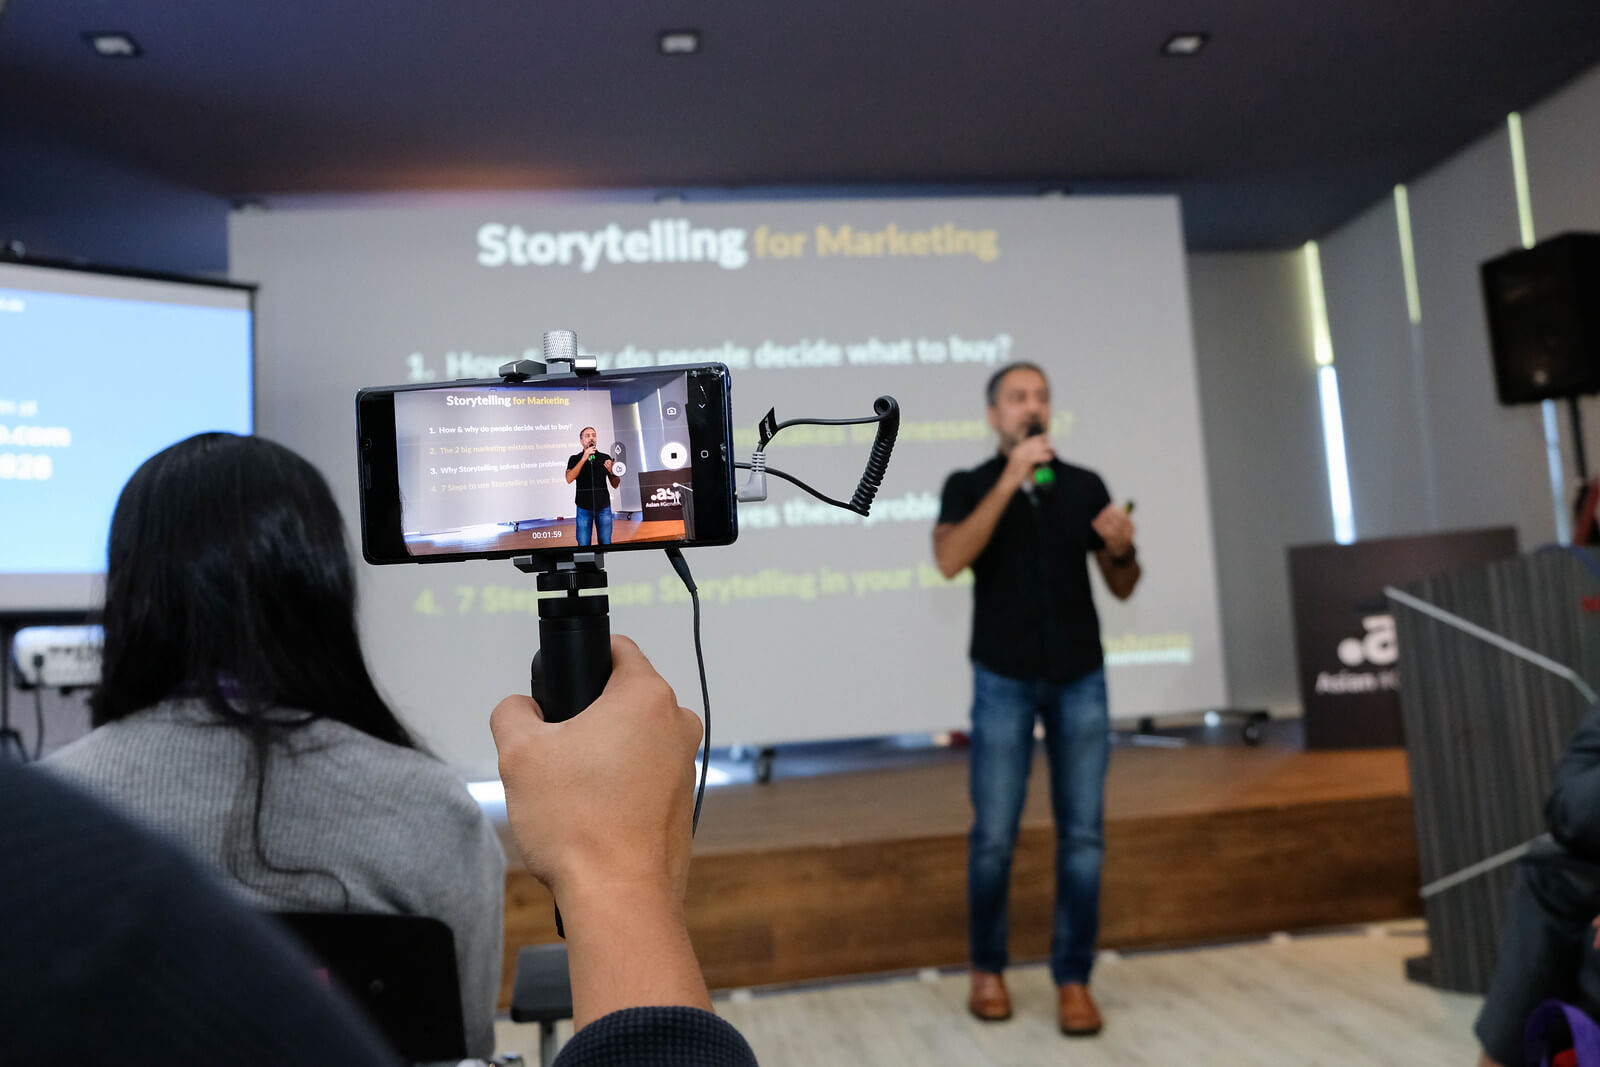 EIMS 2019 Storytelling for marketing